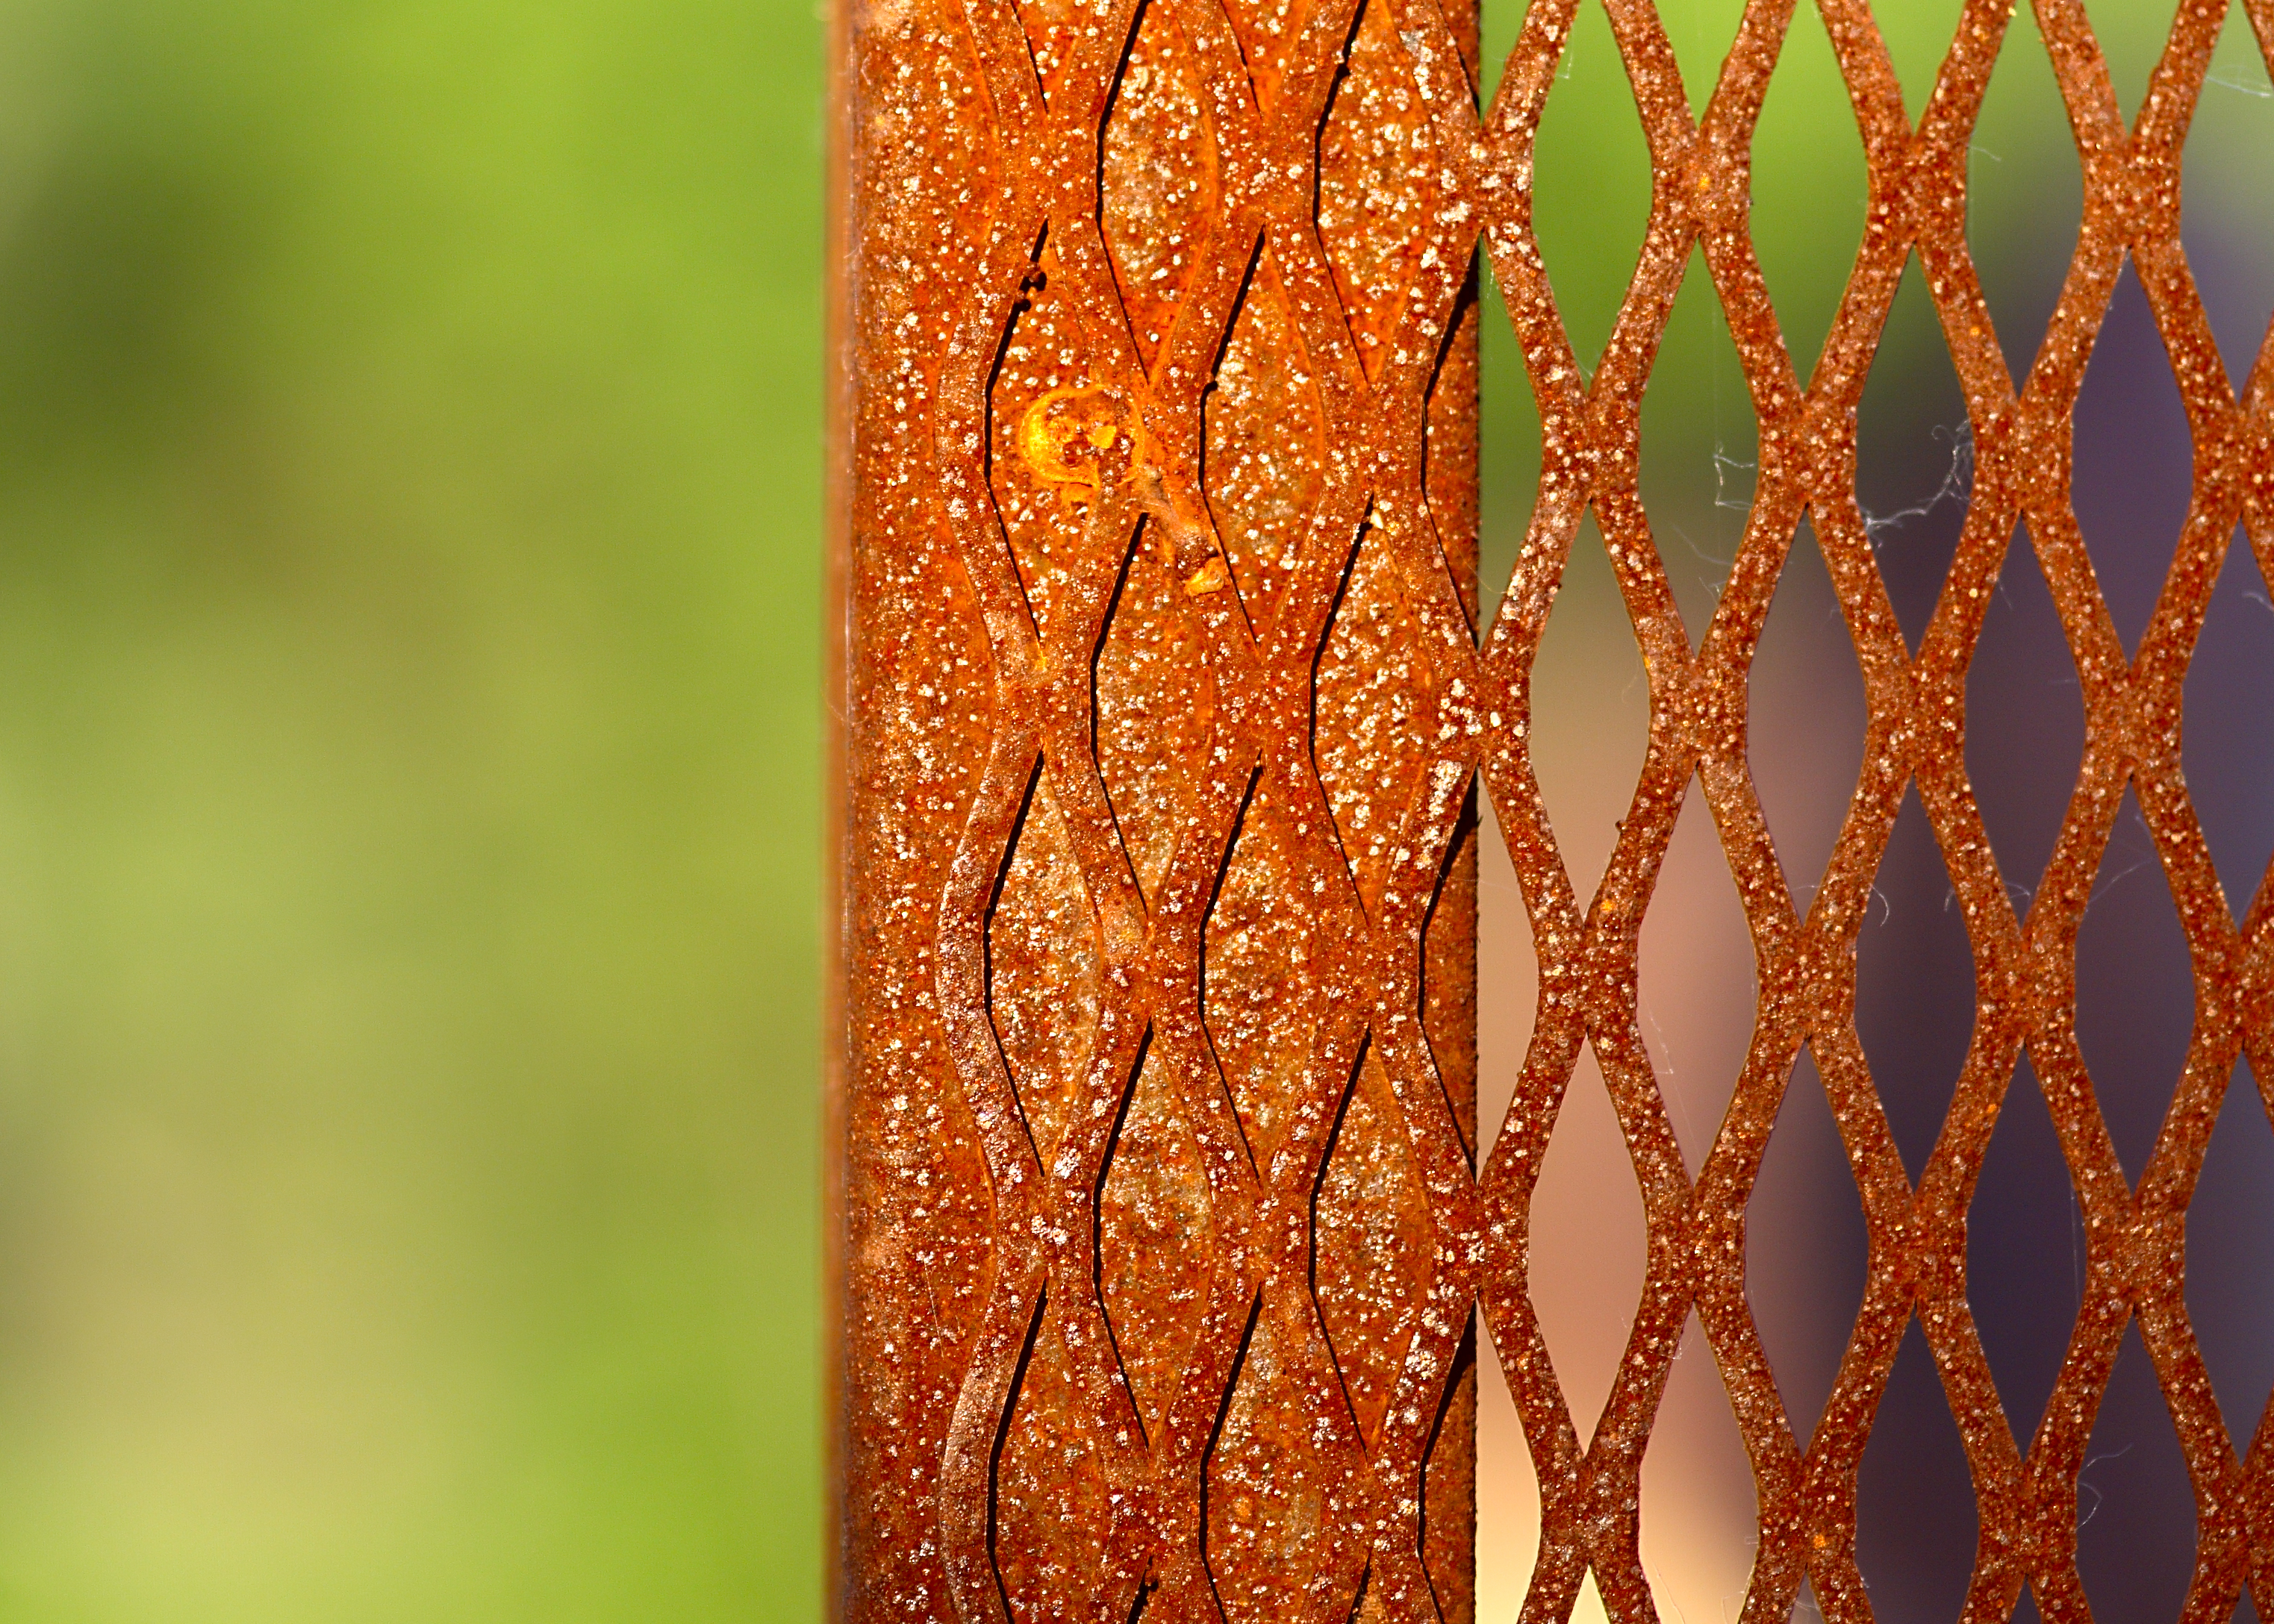 Rusted fence photo